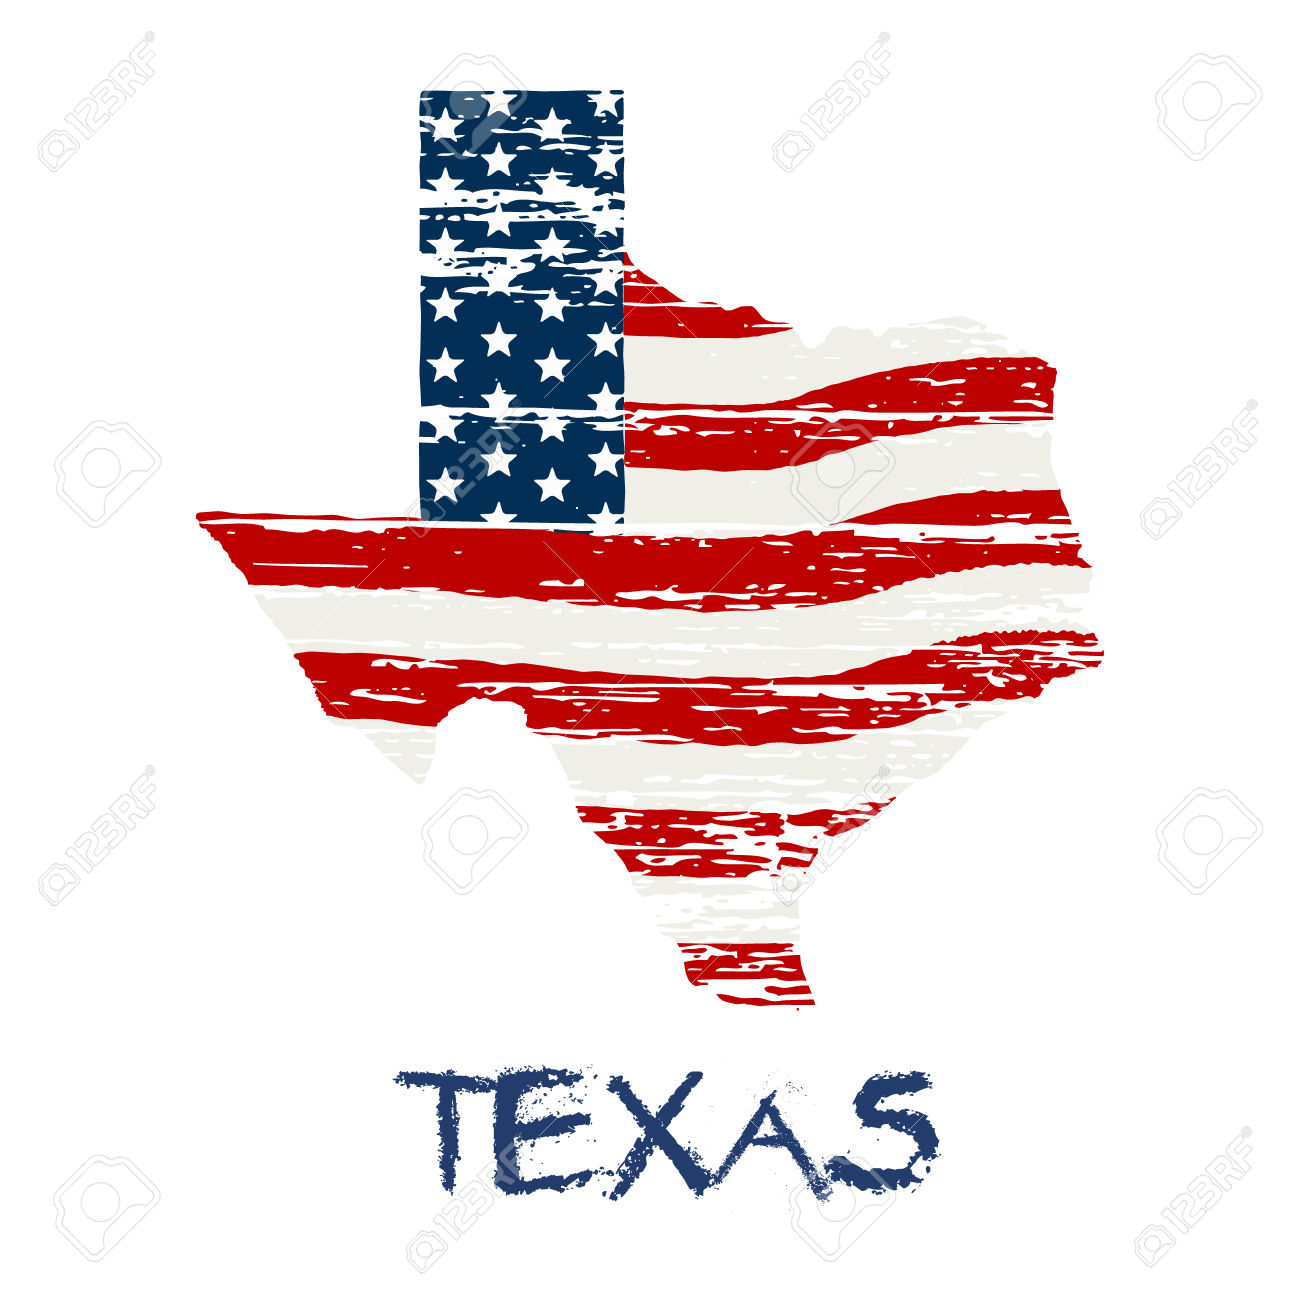 Us map flag clipart svg stock Texas map flag clipart - ClipartFox svg stock